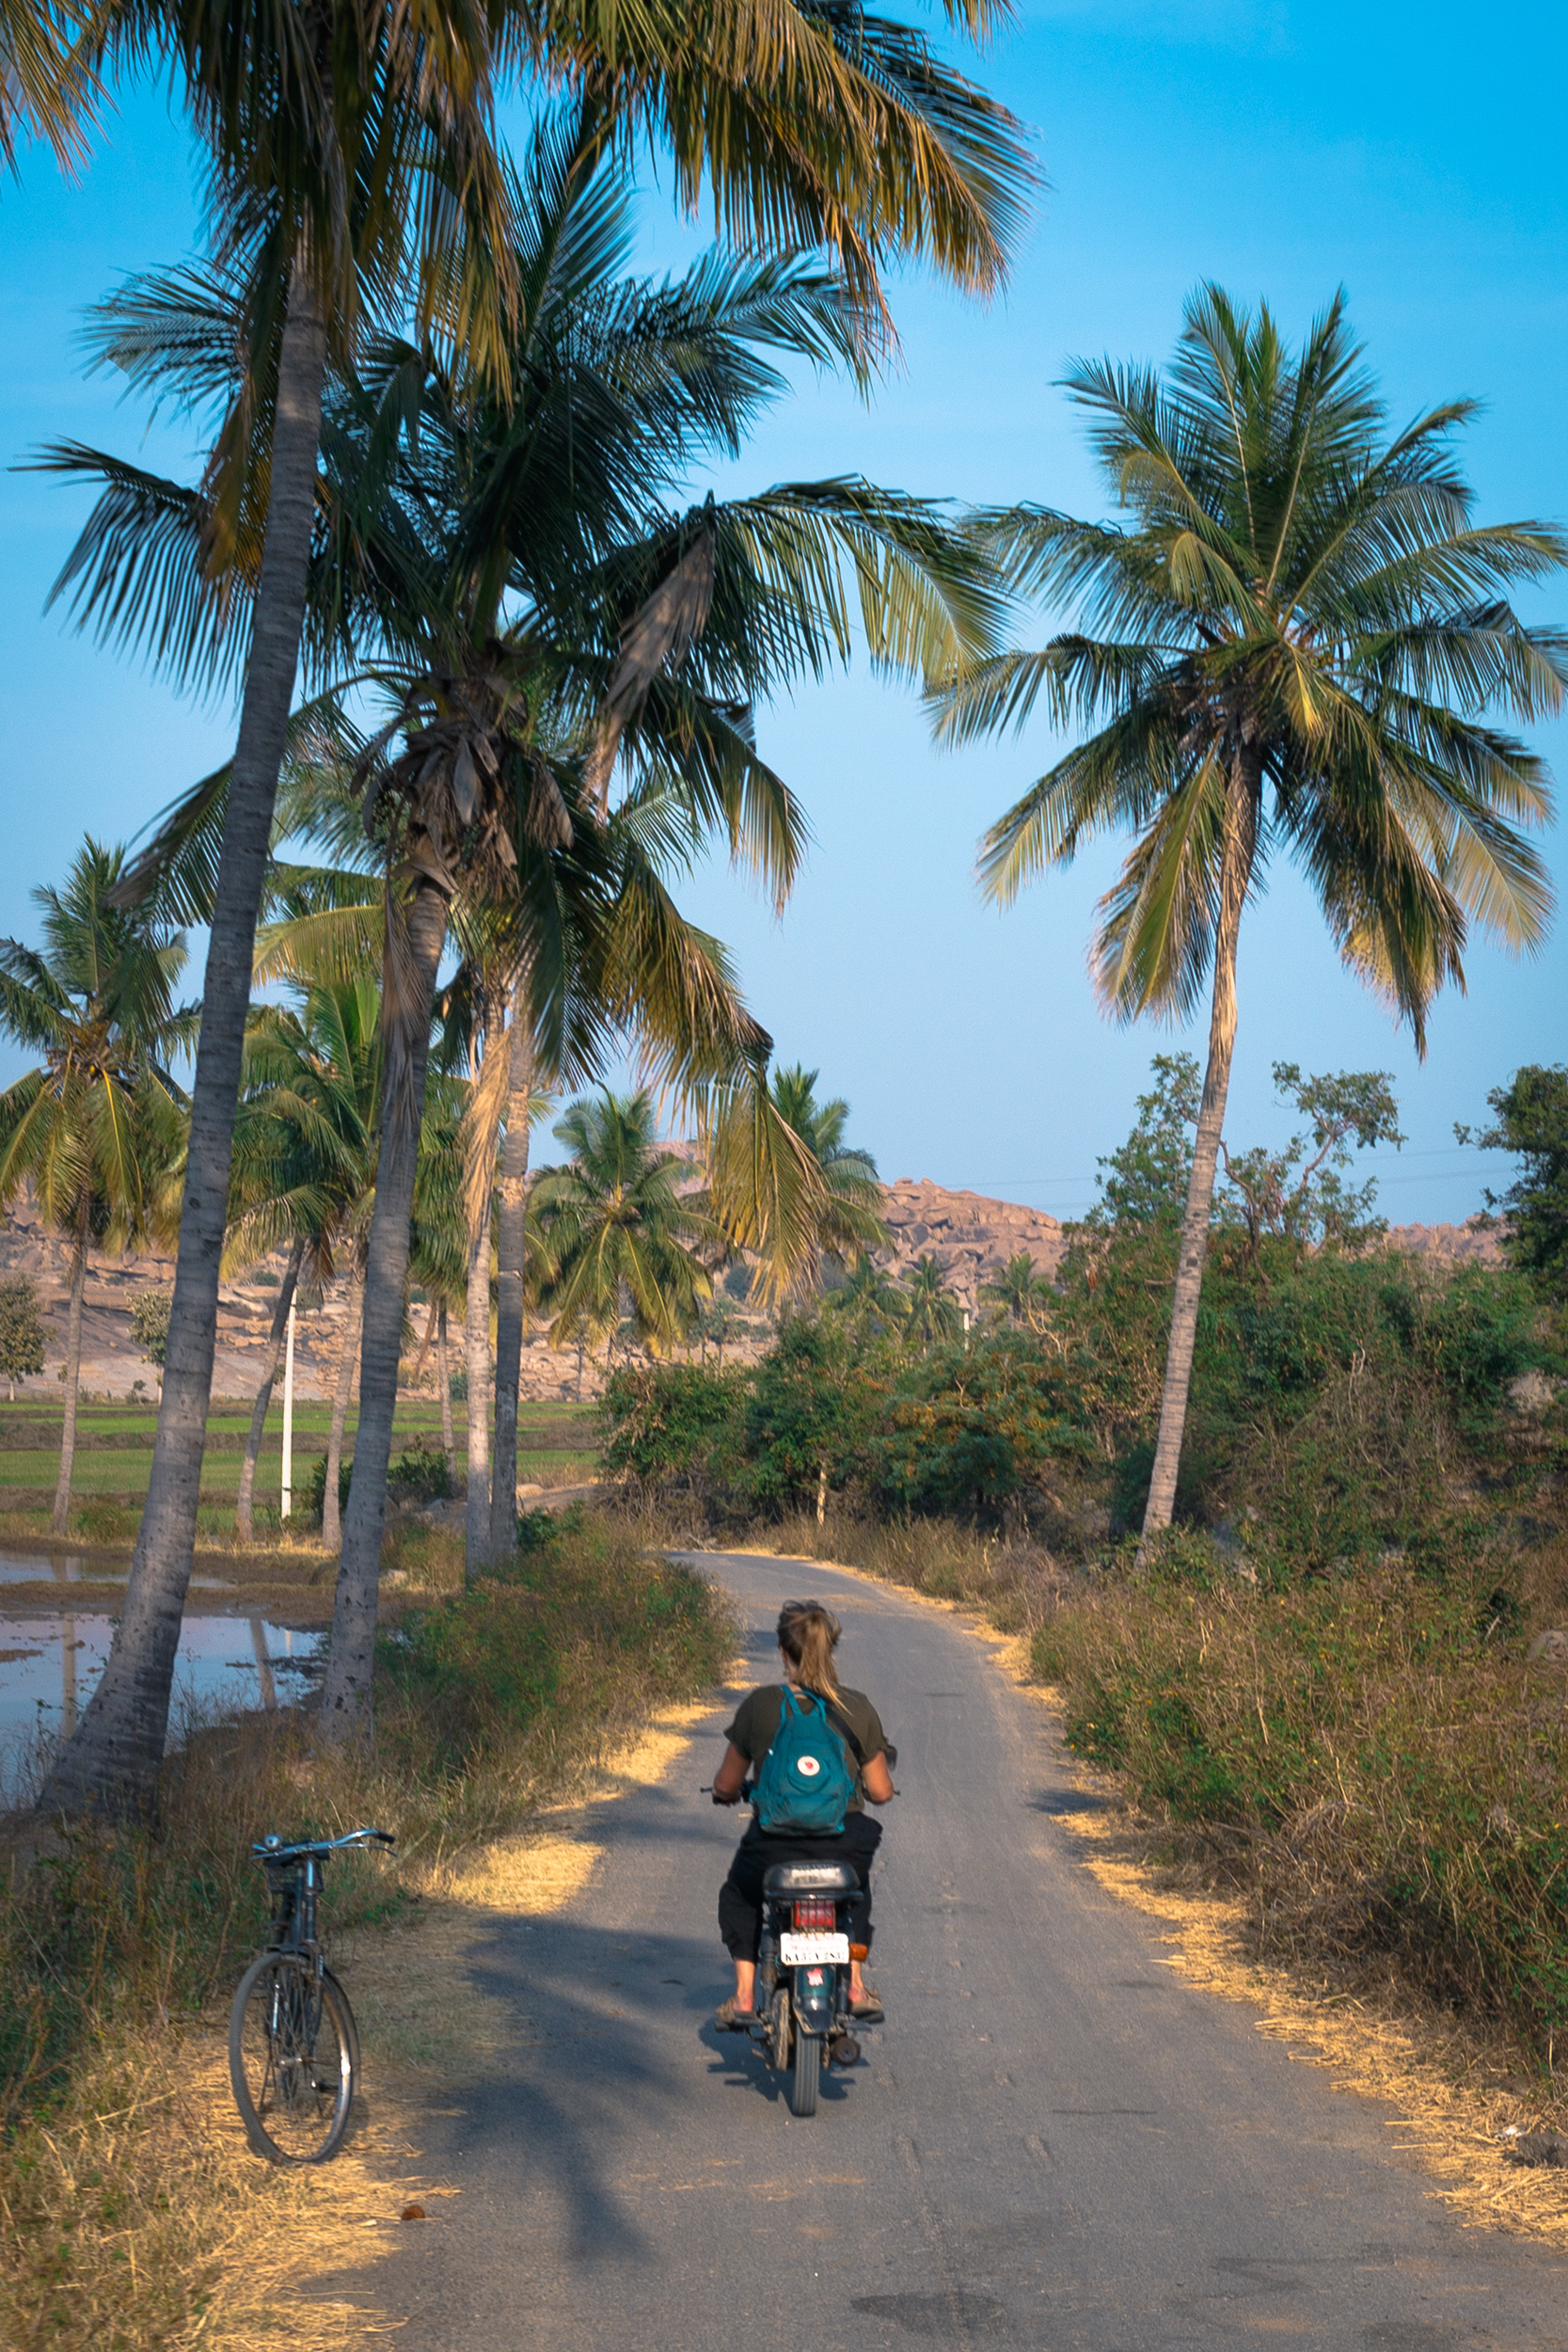 Riding on a motorbike through the rice paddies on Hampi Island.